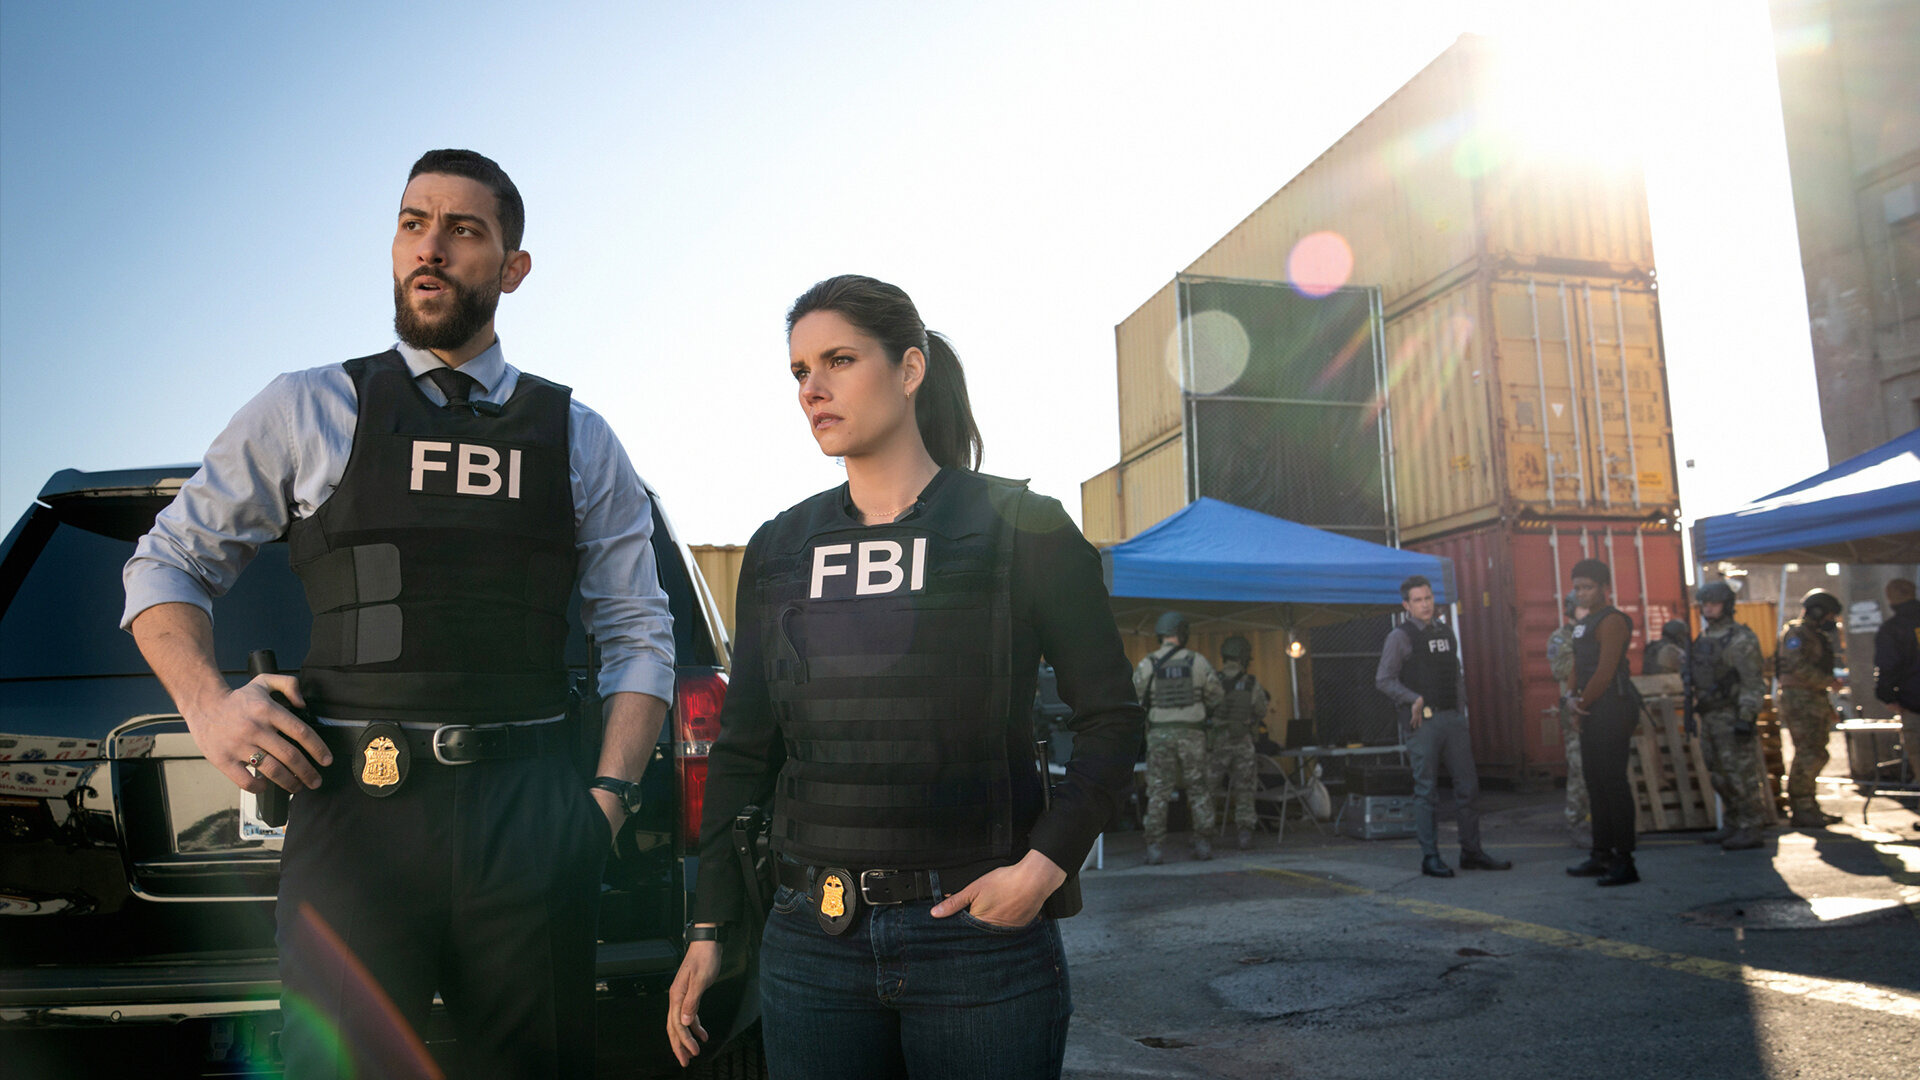 FBI — s03e12 — Fathers and Sons